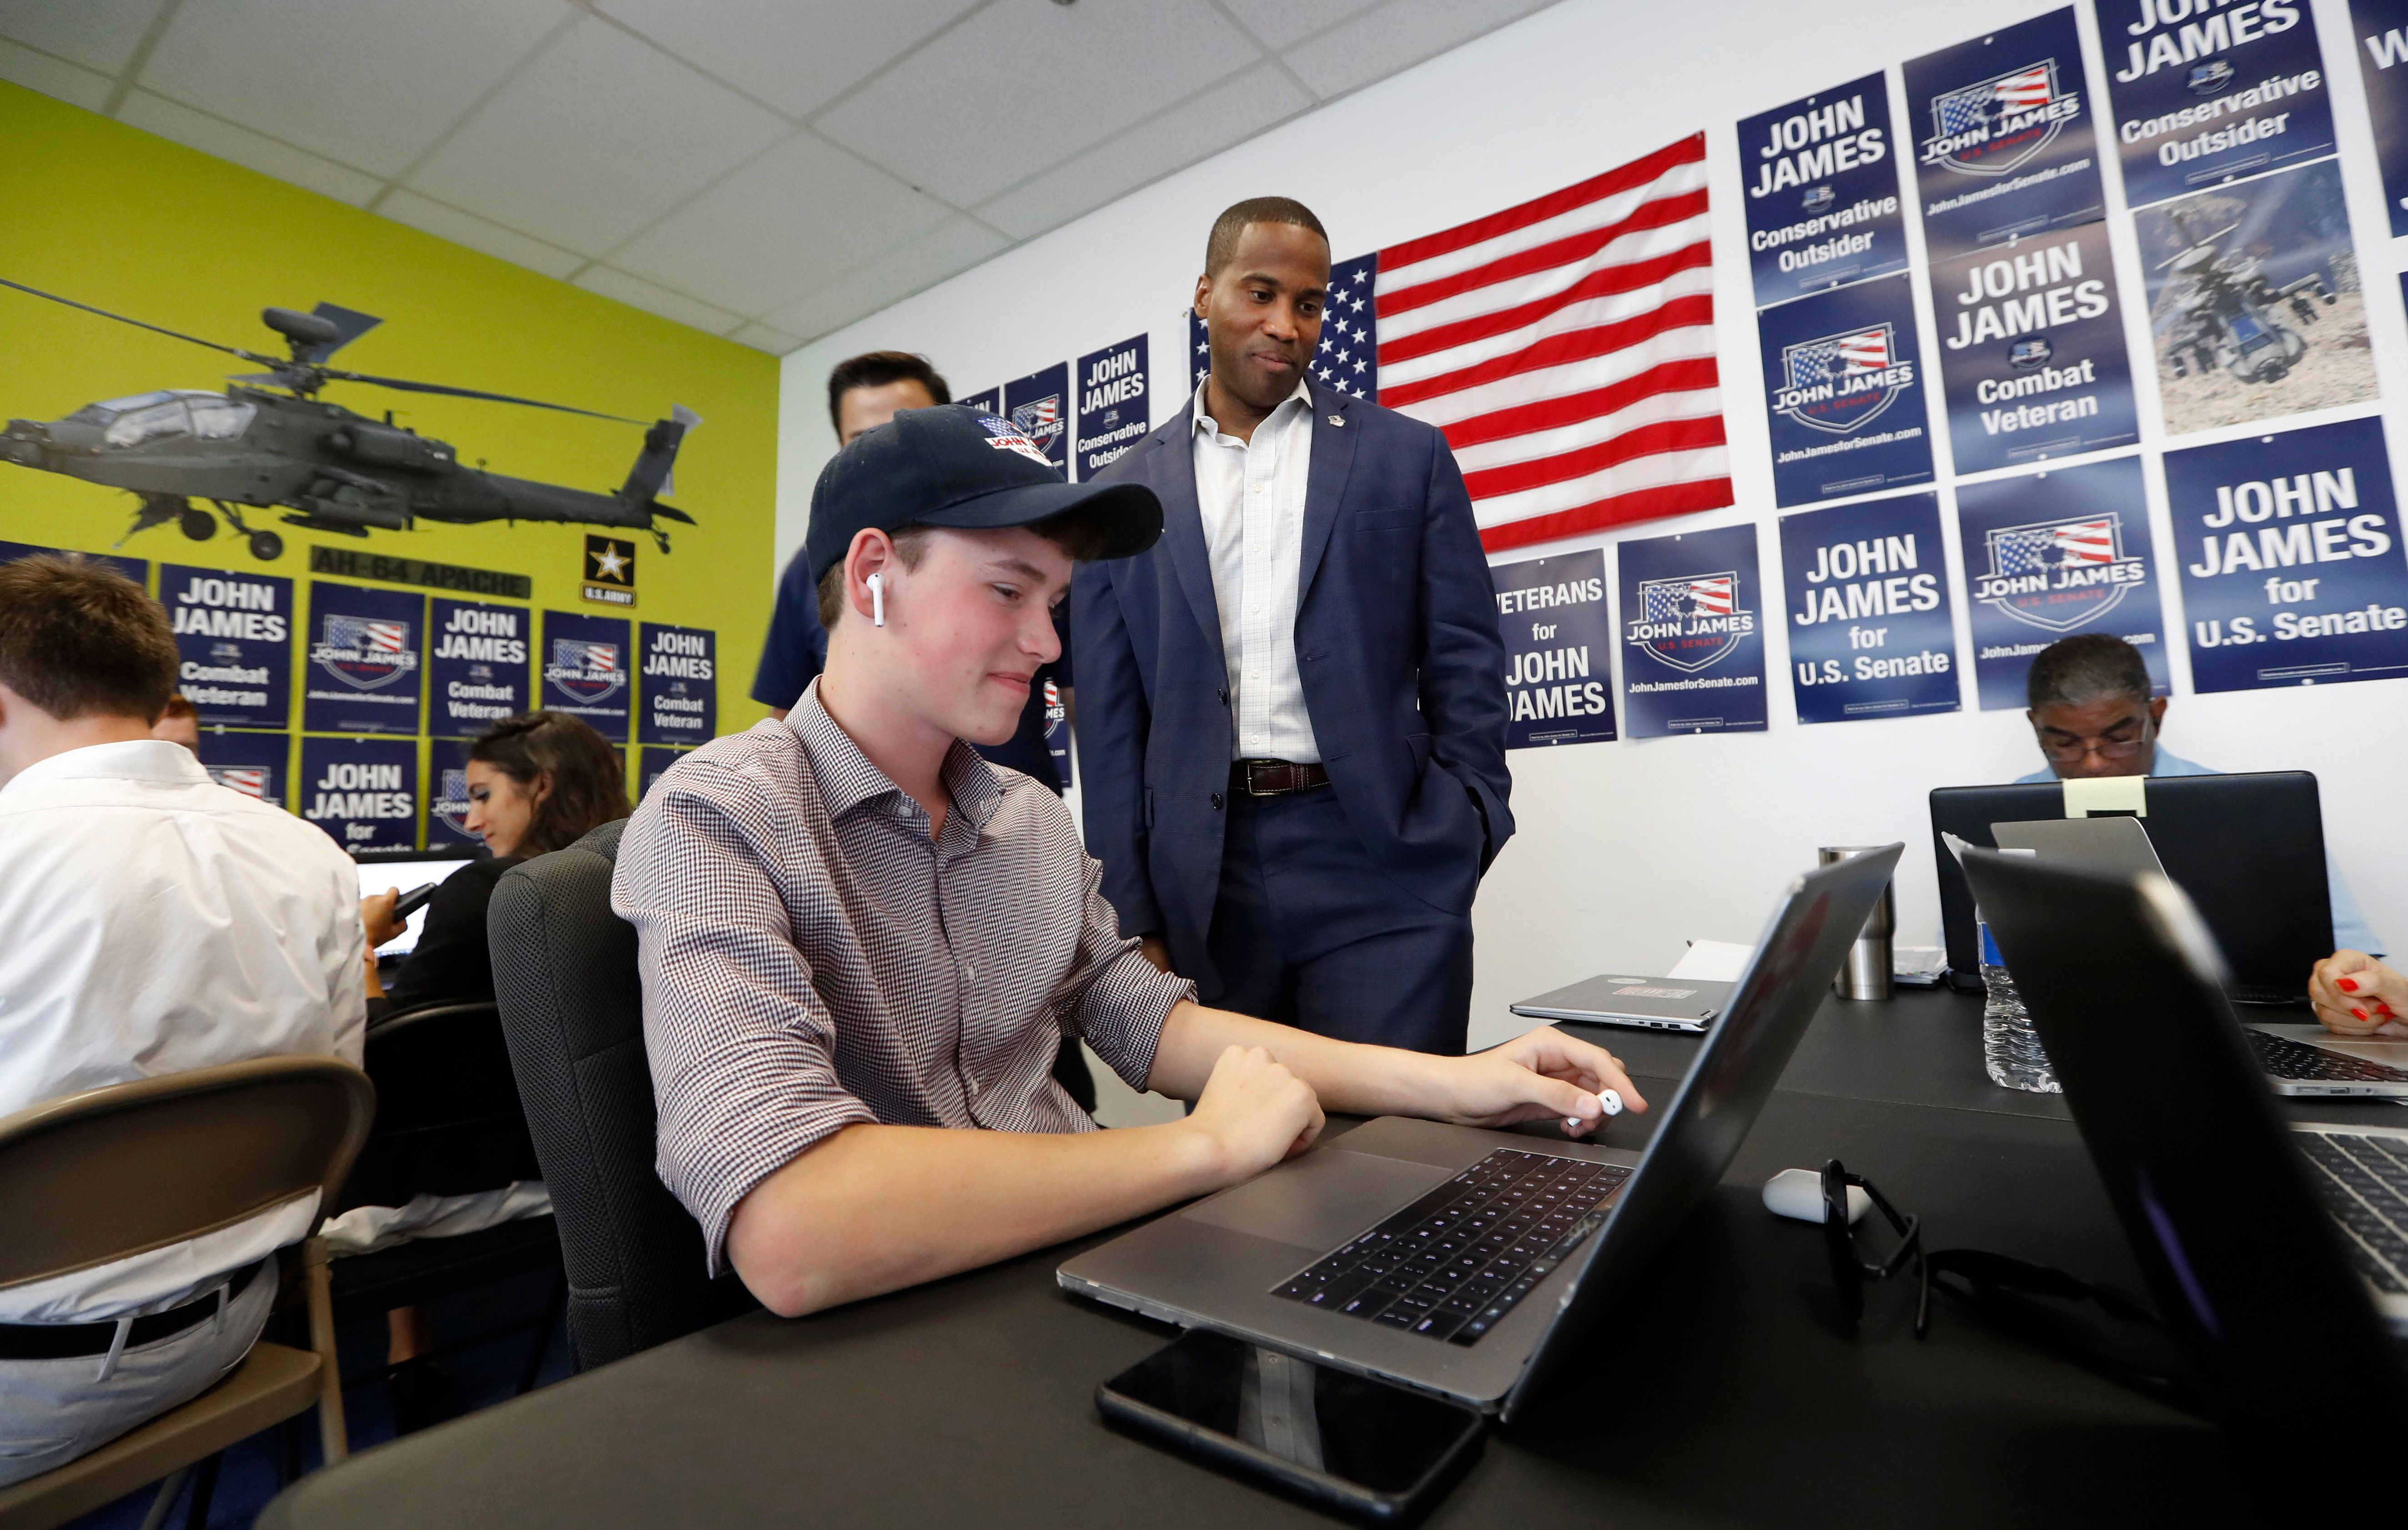 Republican U.S. Senate candidate John James talks with workers at his campaign headquarters in Livonia, Mich., Monday, Aug. 6, 2018. (AP Photo/Paul Sancya)